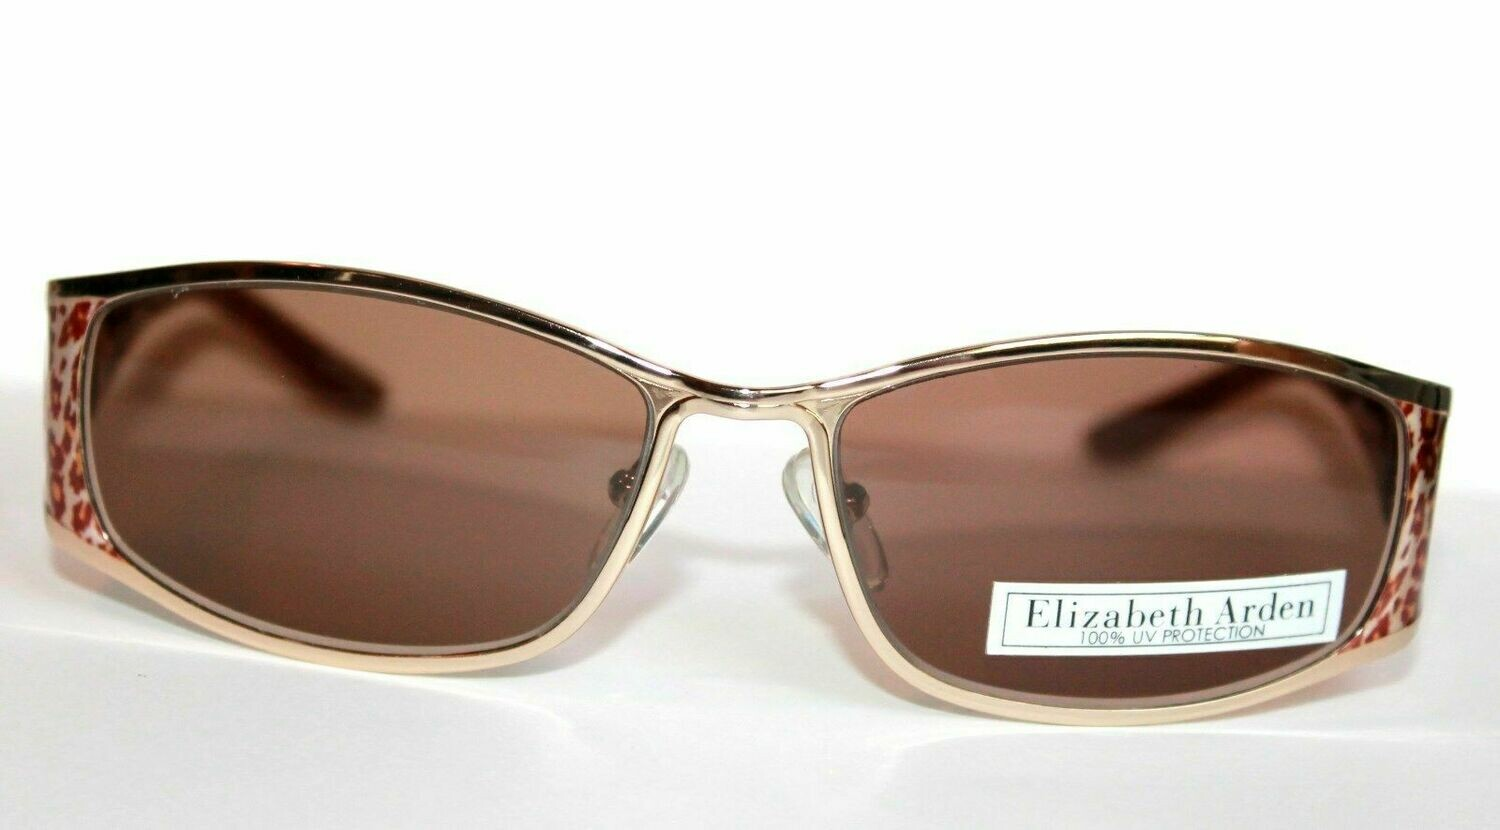 Authentic new Elizabeth Arden Sunglasses Model 5111 Choice of color RX-able